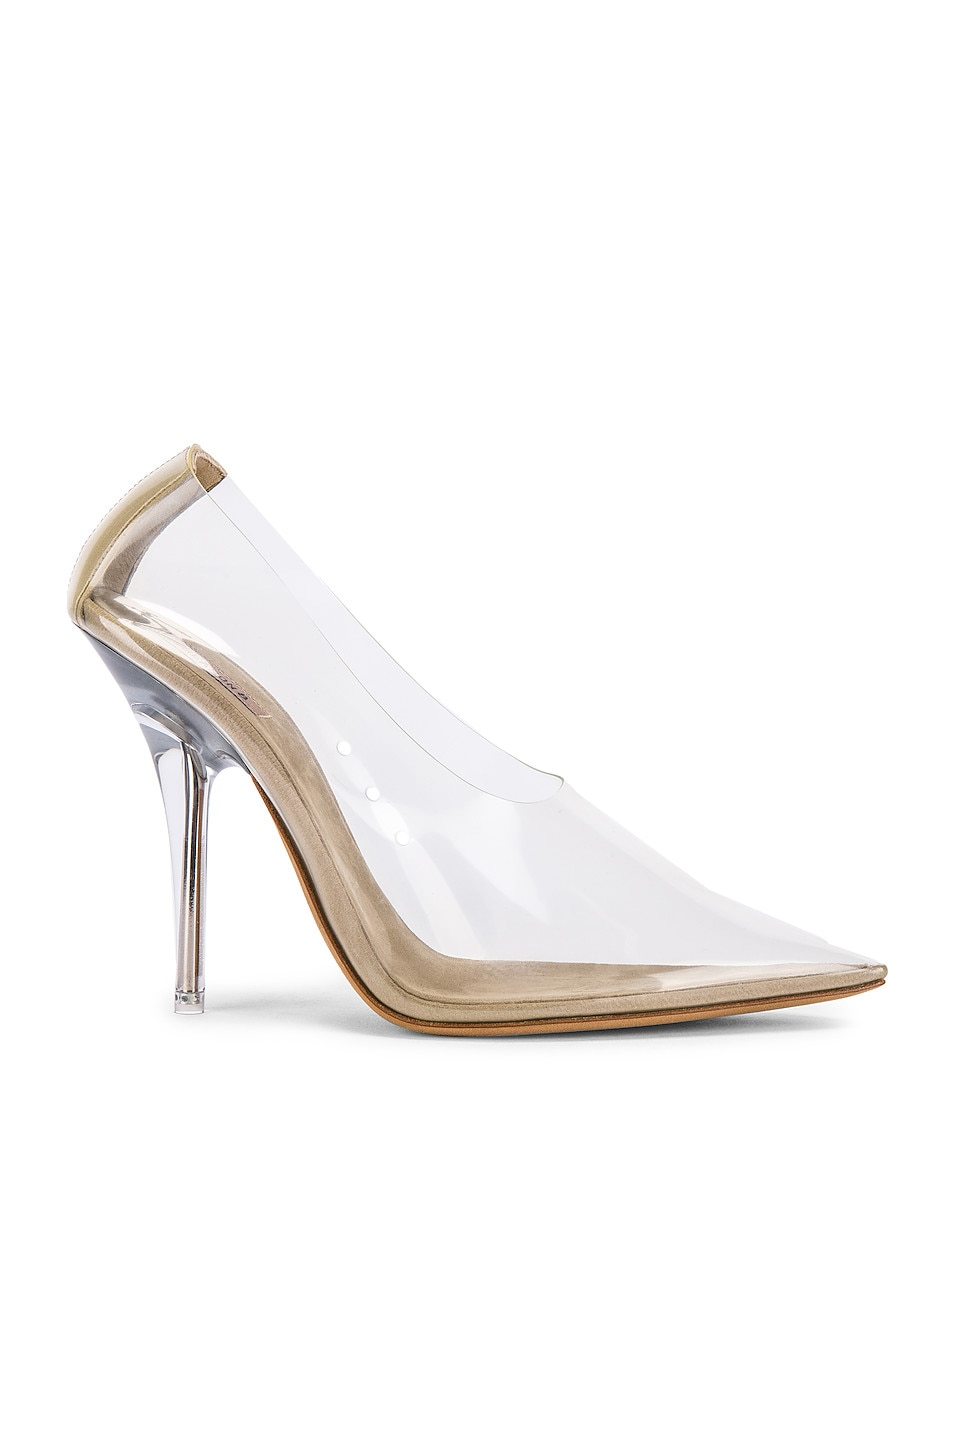 YEEZY SEASON 8 PVC Pump in Clear